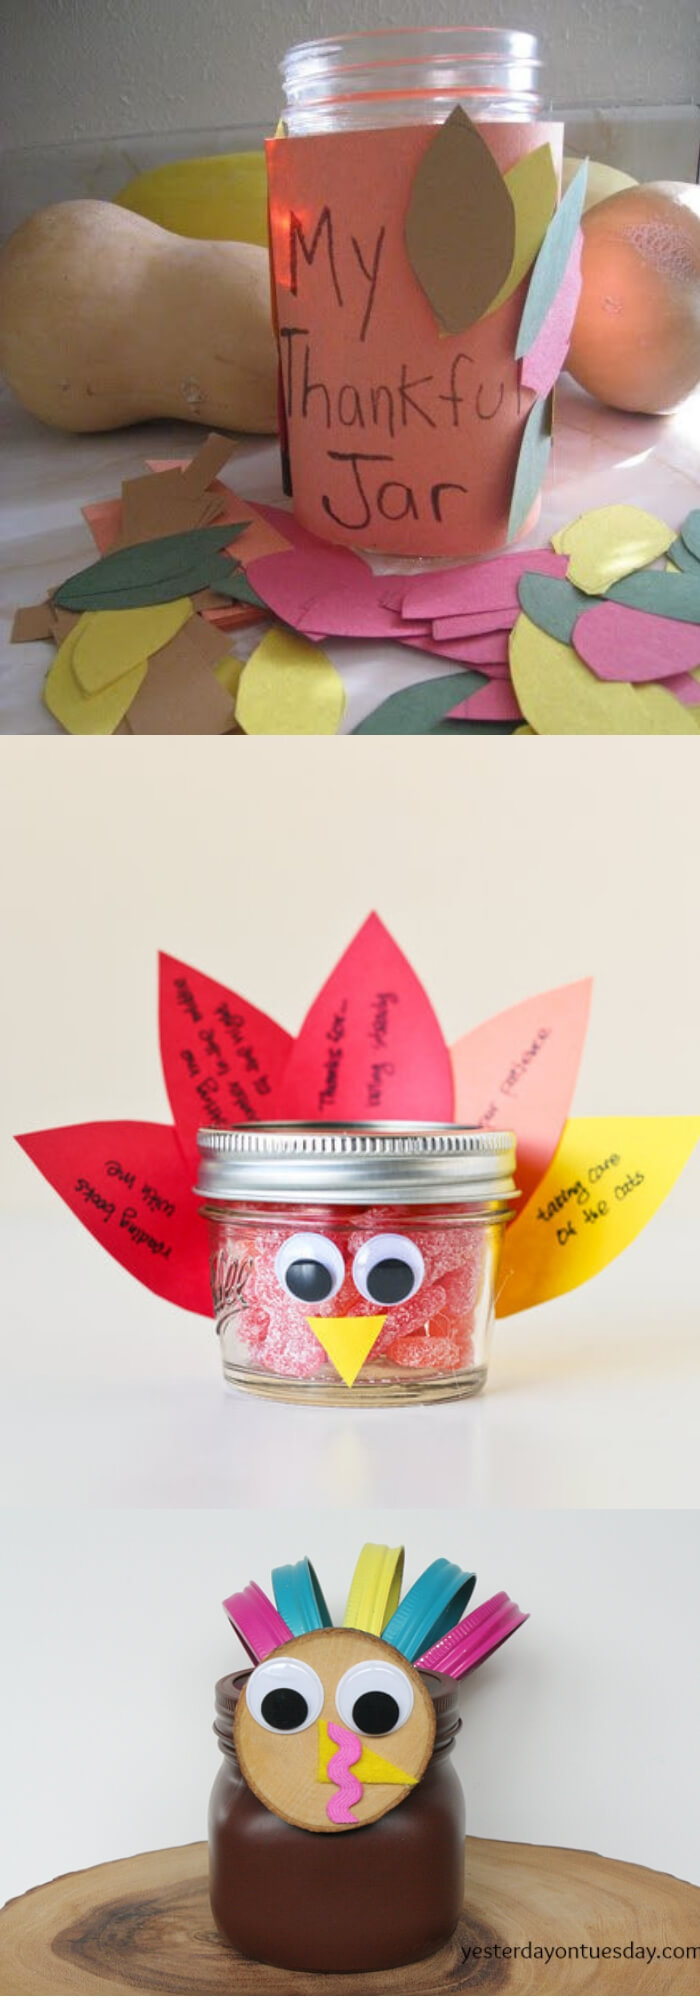 Decorative Jars | Thanksgiving Gifts Kids Can Make - FarmFoodFamily.com